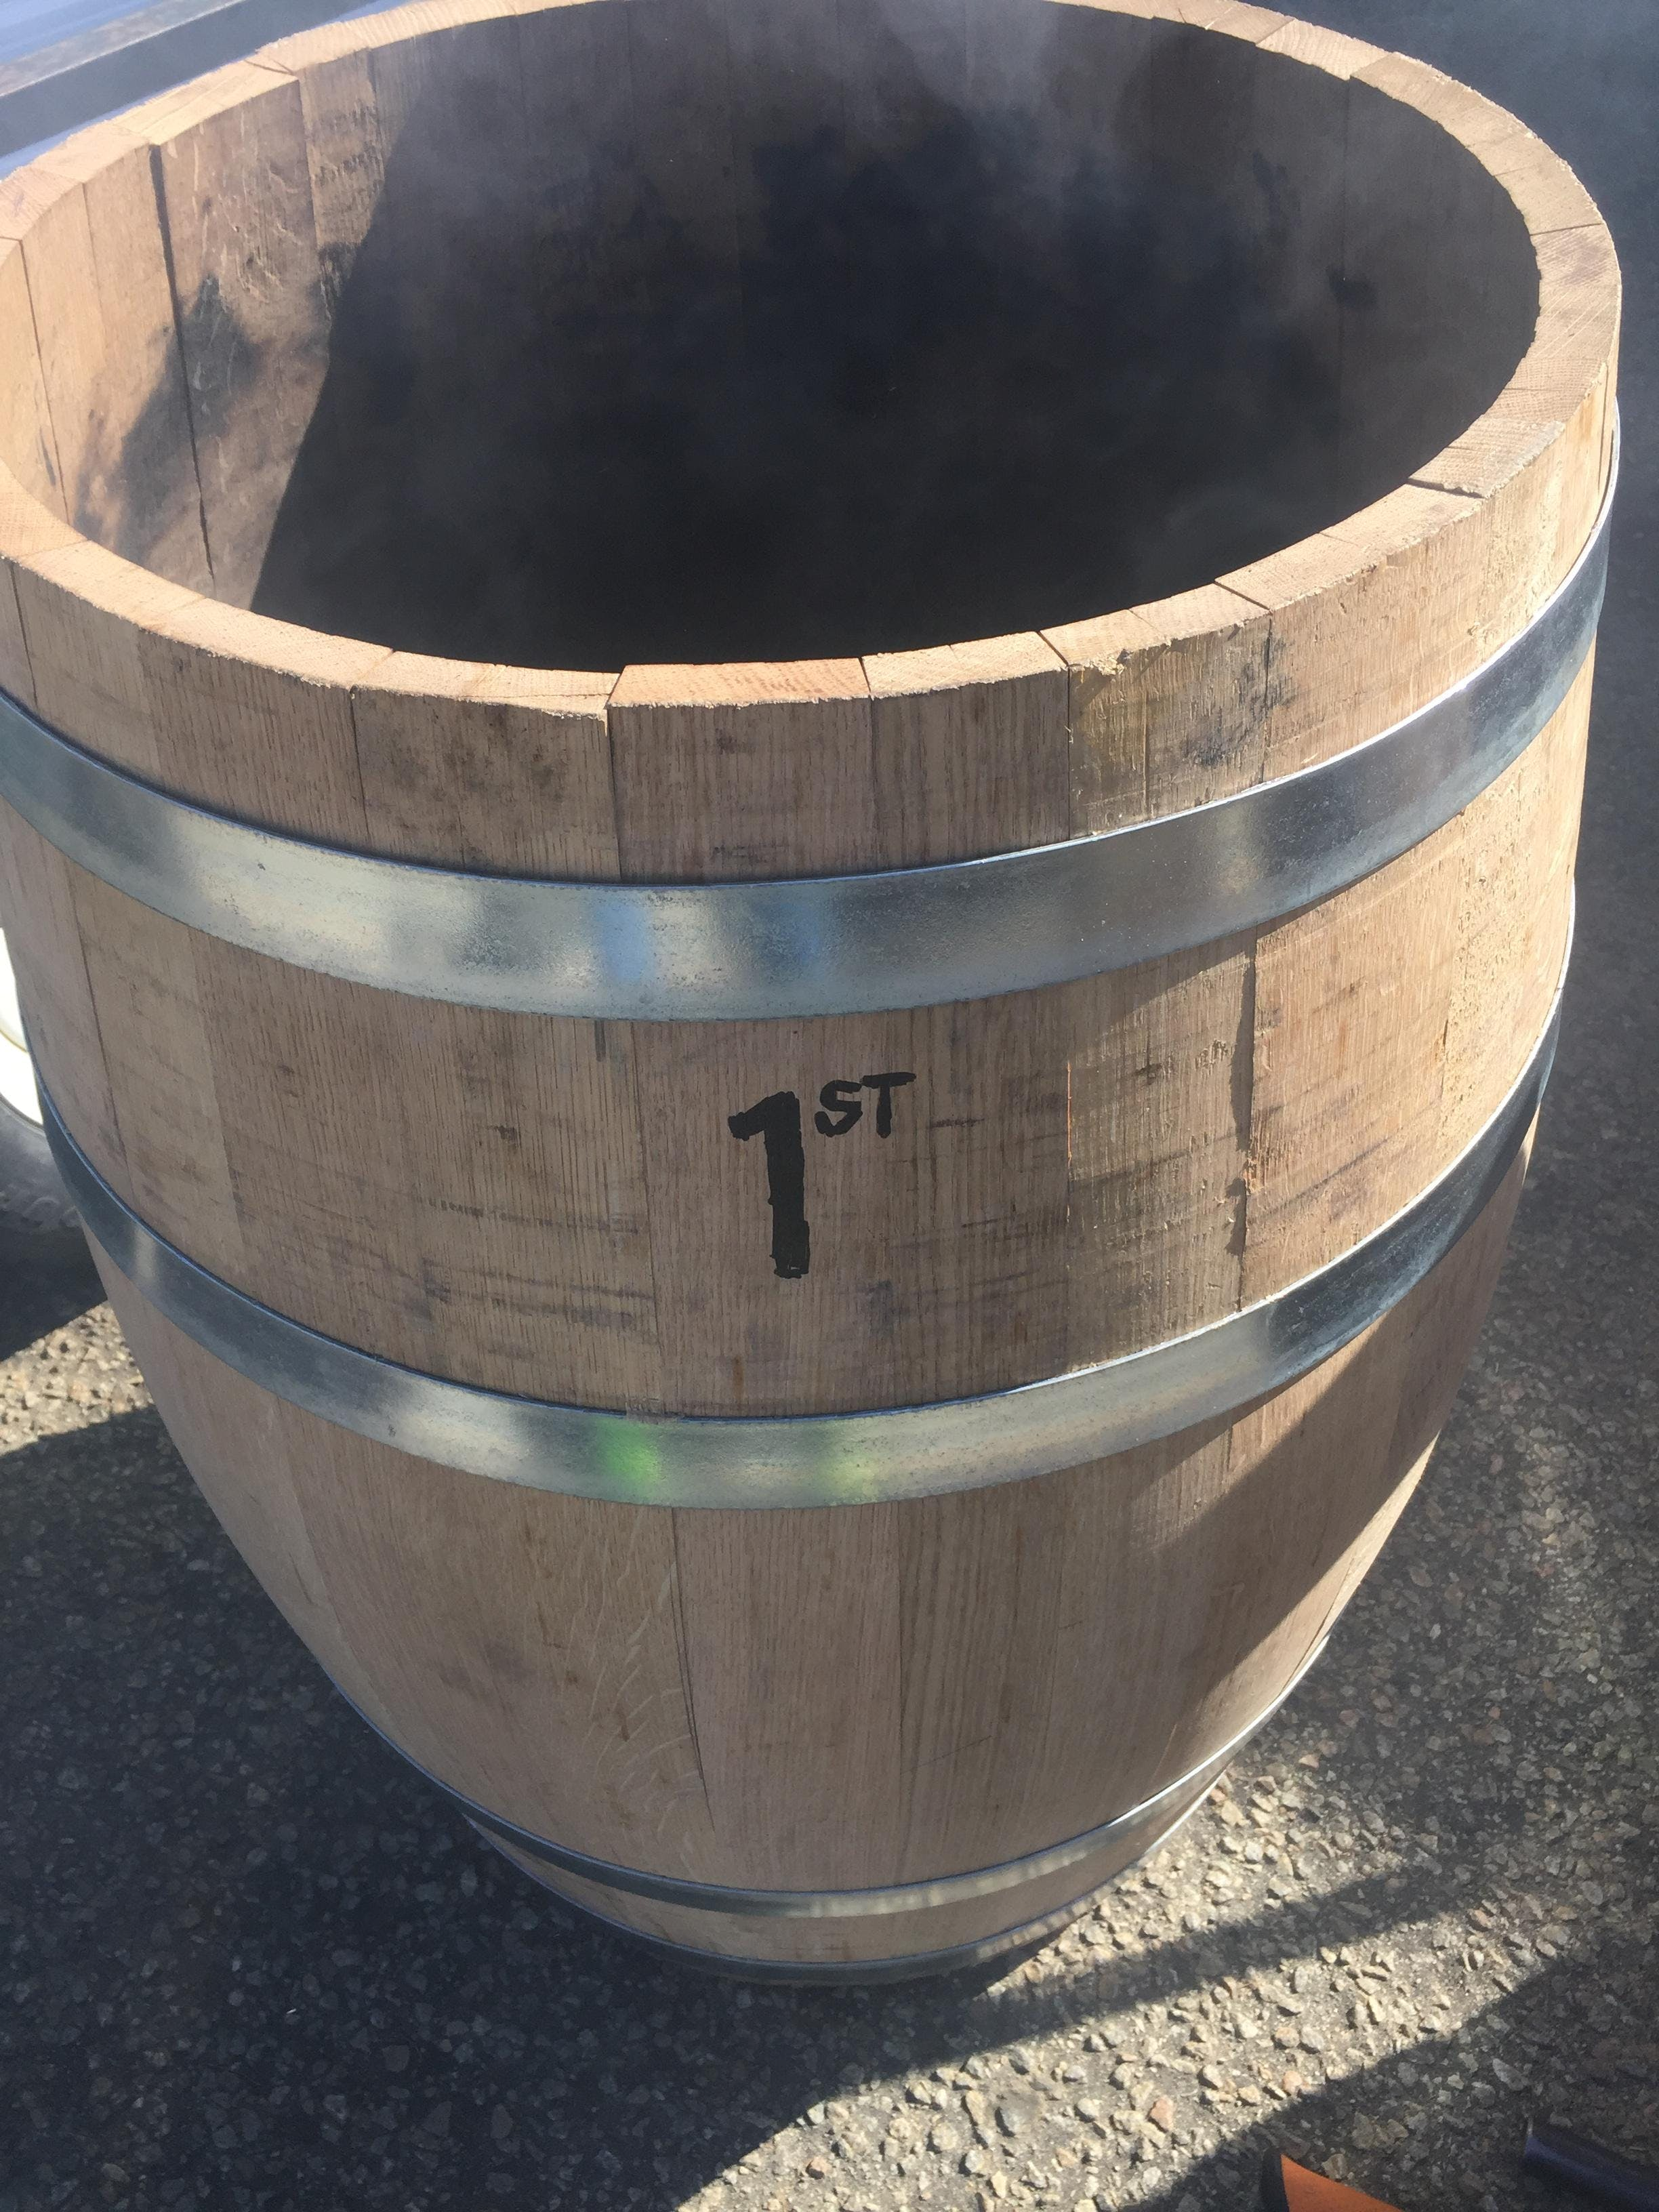 American White Oak Barrel Barrel sold by Black Water Barrels